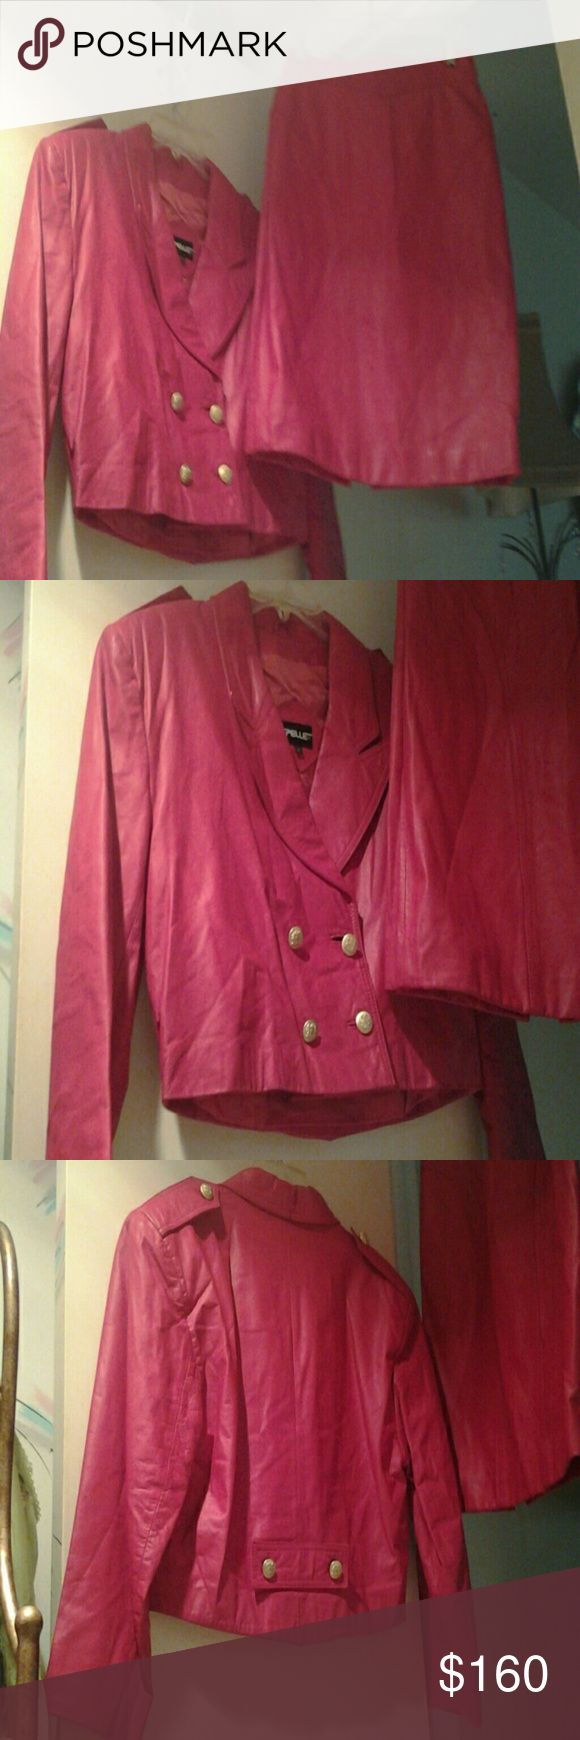 Pelle Pelle Red Leather Jacket & Skirt 100% Genuine Leather, gold tone double breast buttons, high waist jacket, size M, matching leather back zip skirt size 8 (no missing buttons, should be tightened) Made in Korea Pelle Pelle Jackets & Coats Blazers